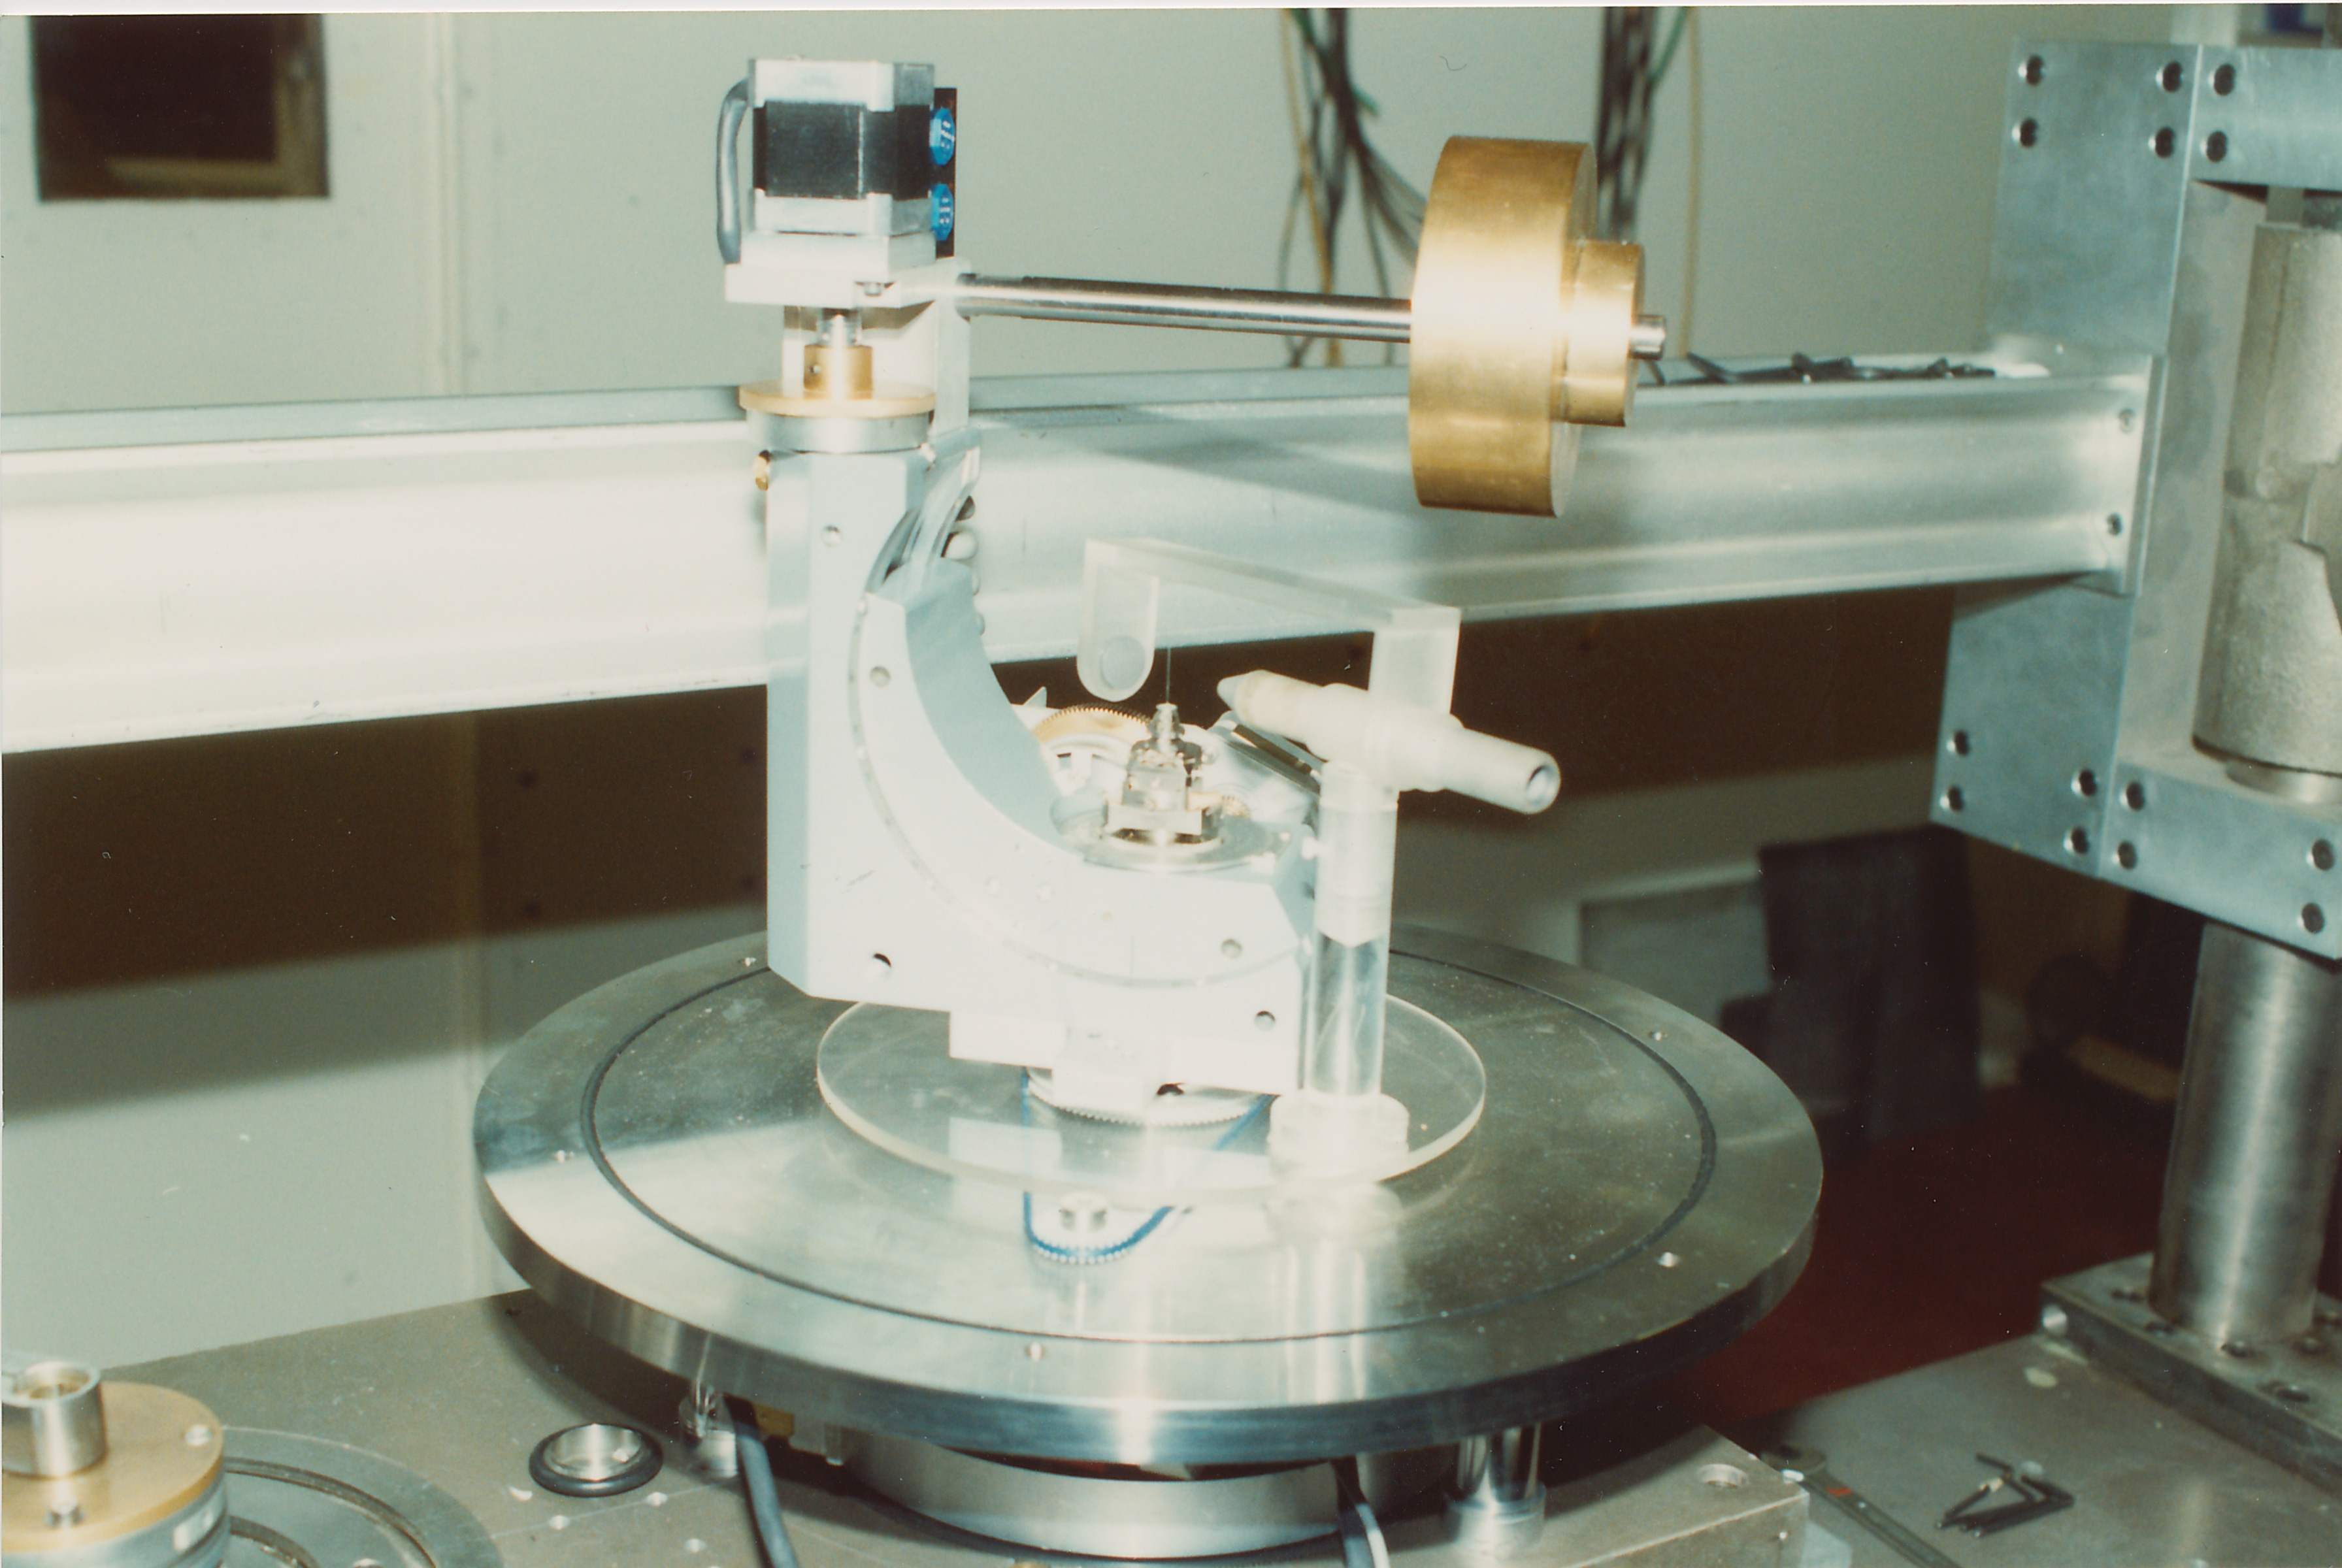 sc0077.jpg - GEC quarter circle cradle with counterbalance weight, Jan 1991